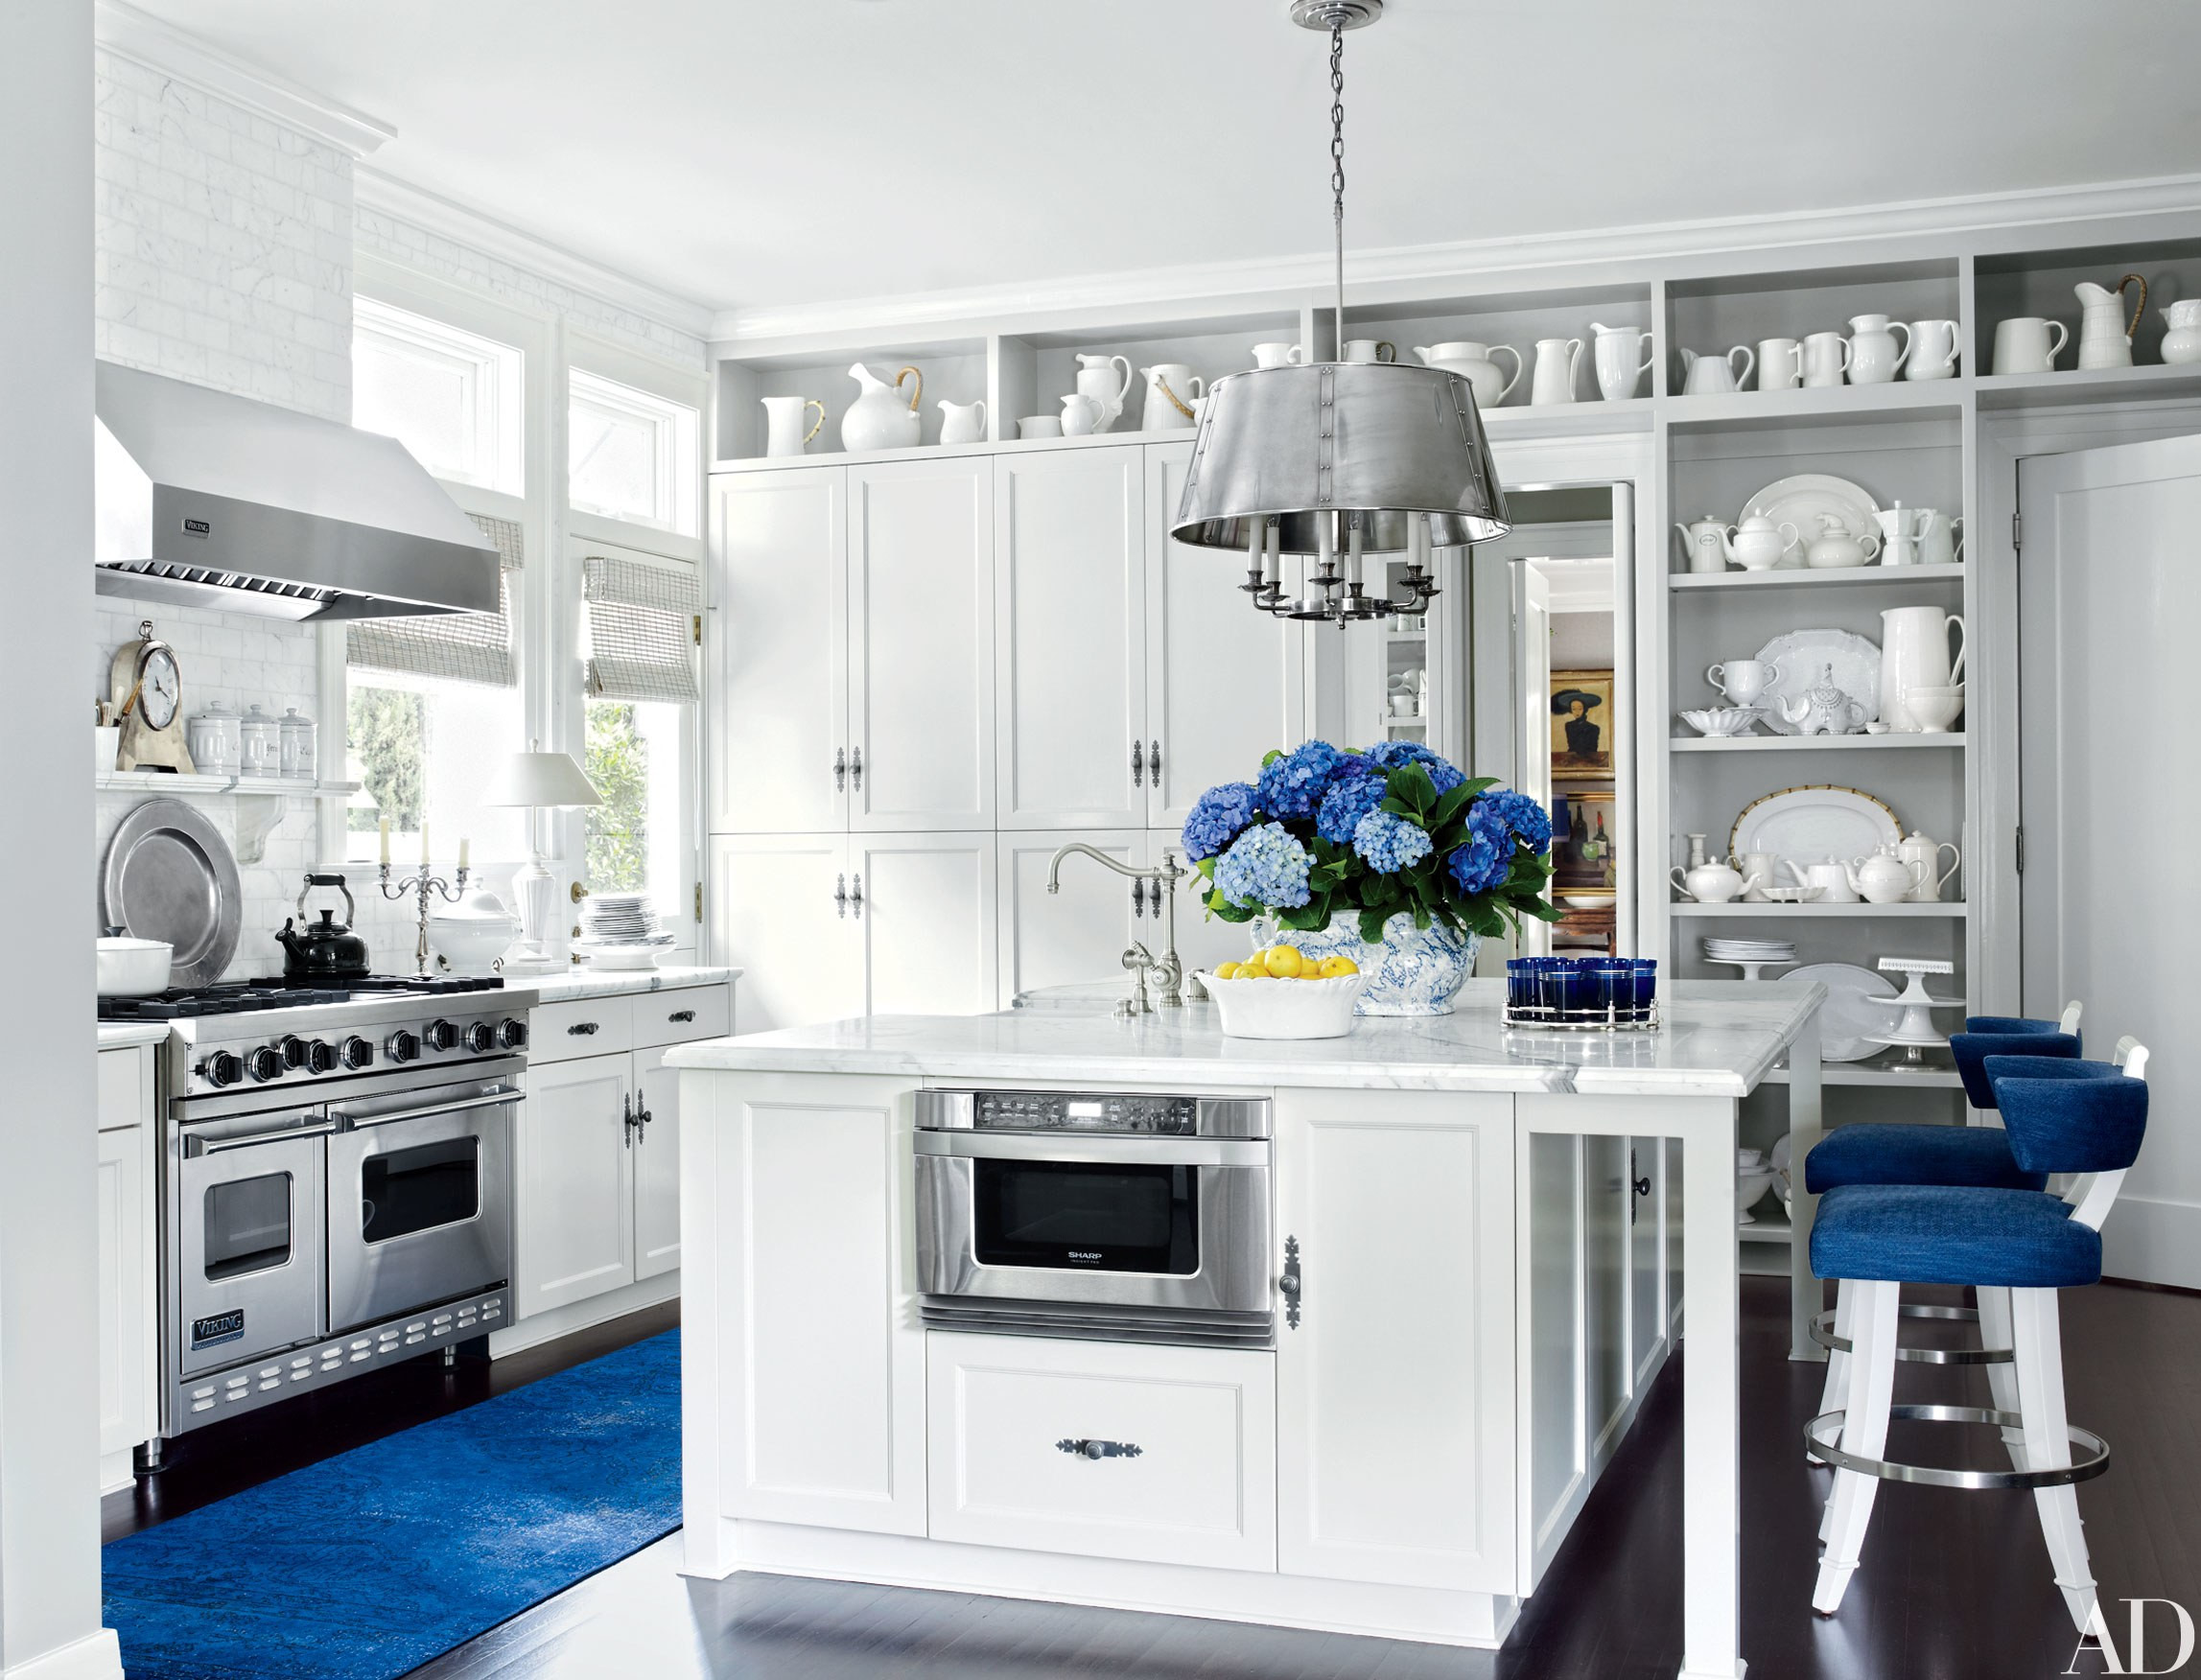 Best ideas about Kitchen Decor Accents . Save or Pin 27 Rooms That Showcase Blue and White Decor s Now.